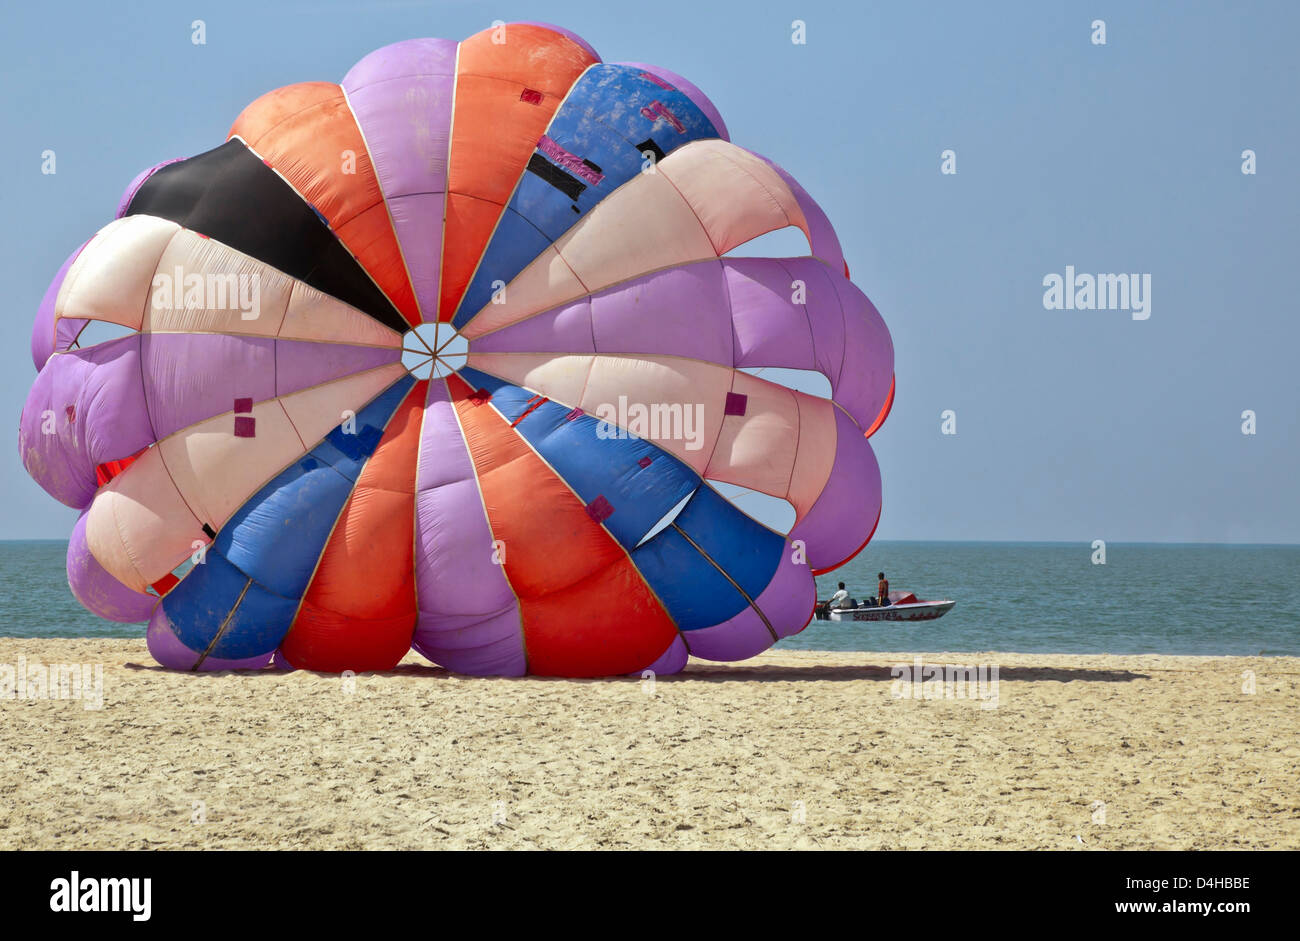 generic tropical shot of paragliders about to take flight over the ocean and beach area of Goa India Stock Photo